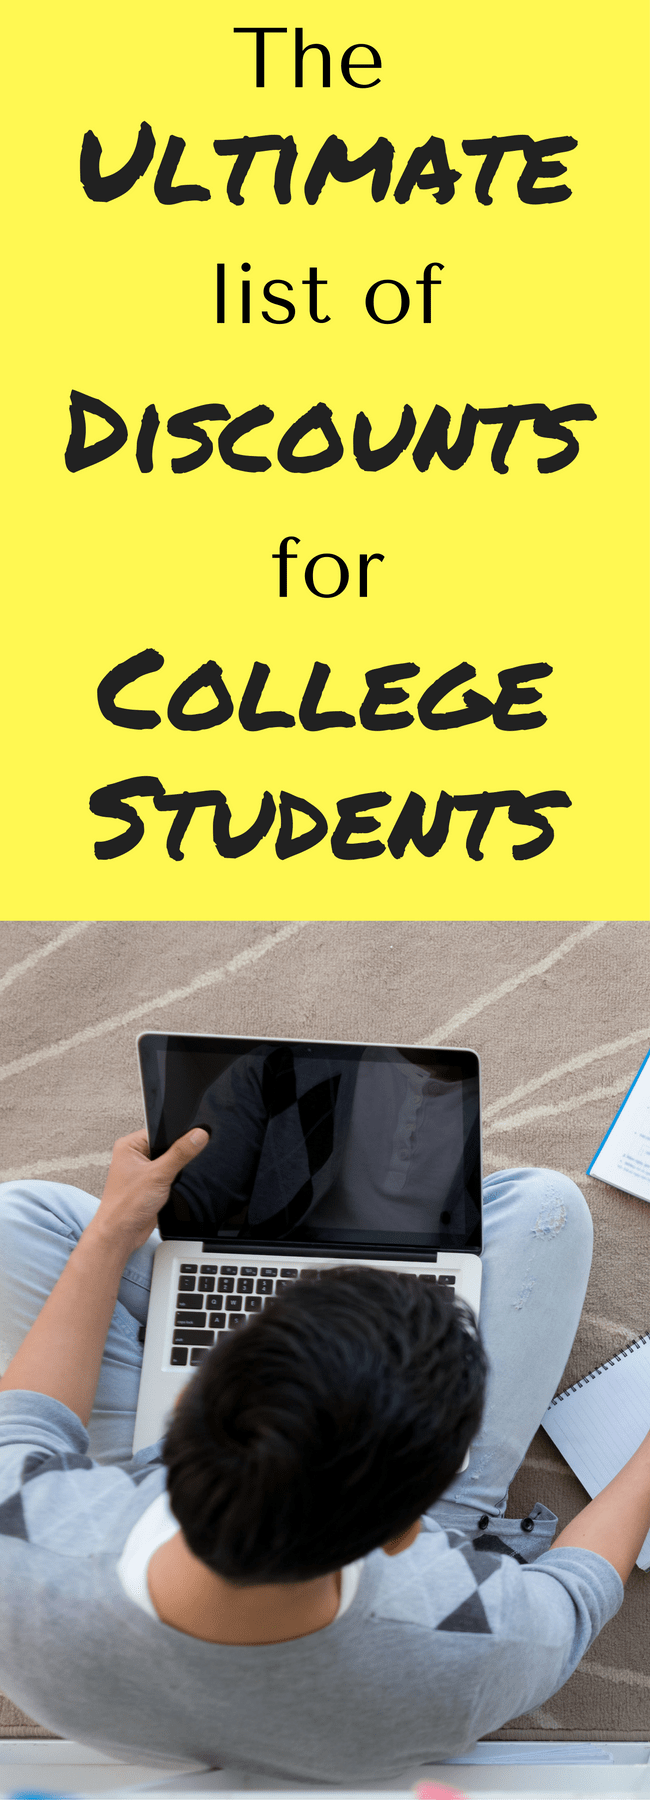 The ultimate list of discounts for college students / college student discounts / college students / college tips / tips for college students / college / save money college / college money saving